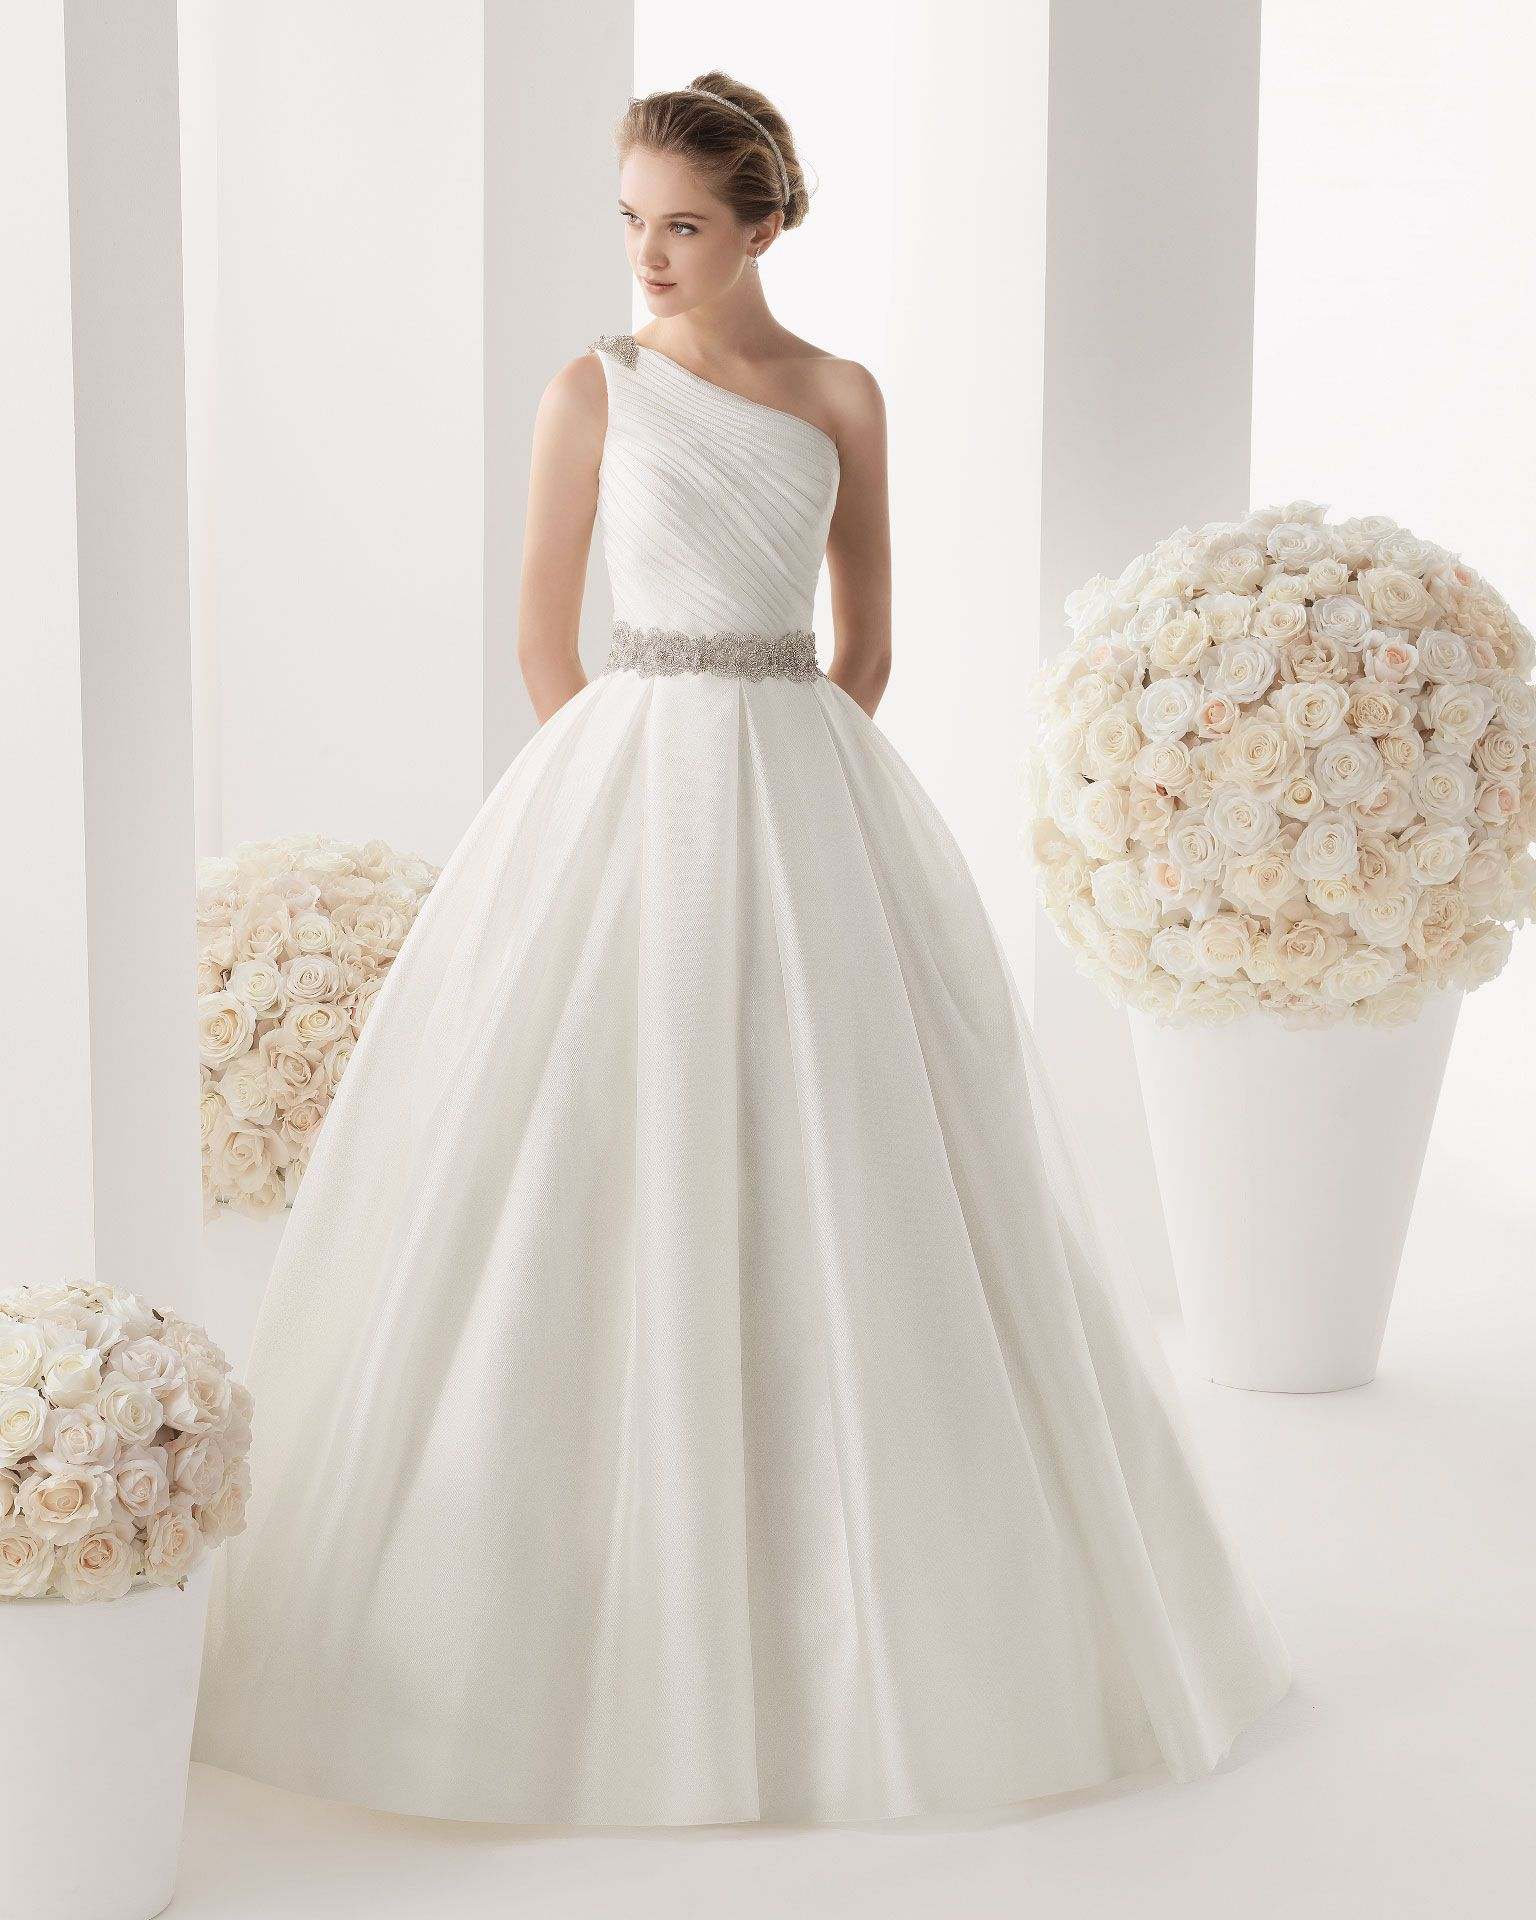 White off the shoulder wedding dress  MELIA  Gazar dress and train and beaded brooch in a natural colour